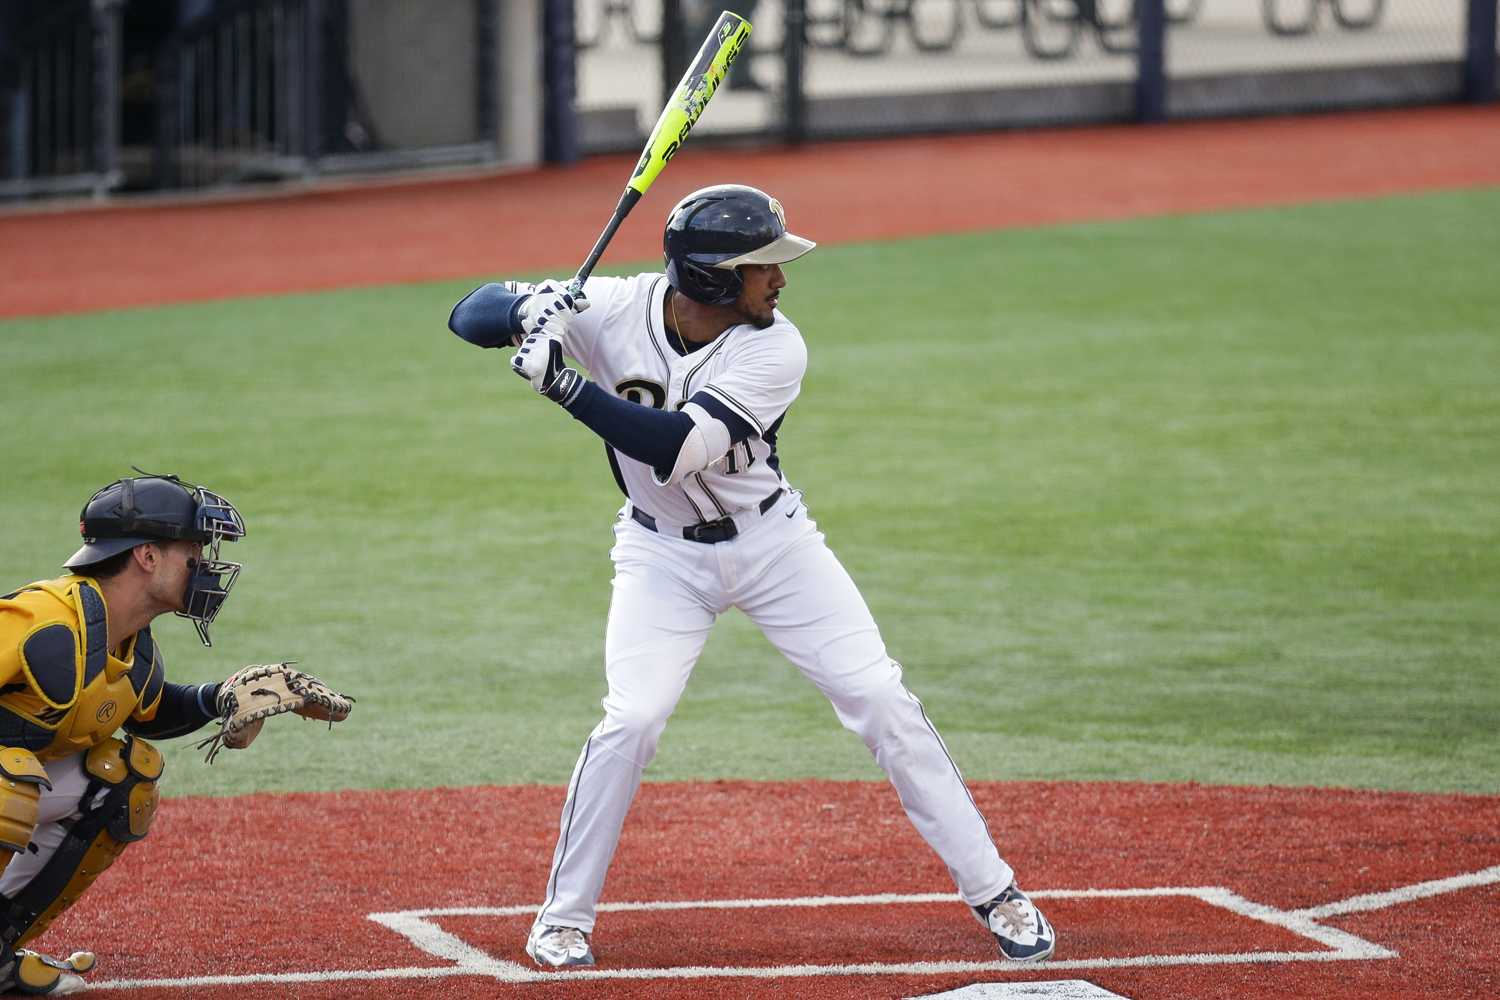 Redshirt junior Liam Sabino (11) contributed two hits and three RBIs during Pitt's 4-3 win over Georgia Tech Saturday. (Photo by Thomas Yang | Visual Editor)